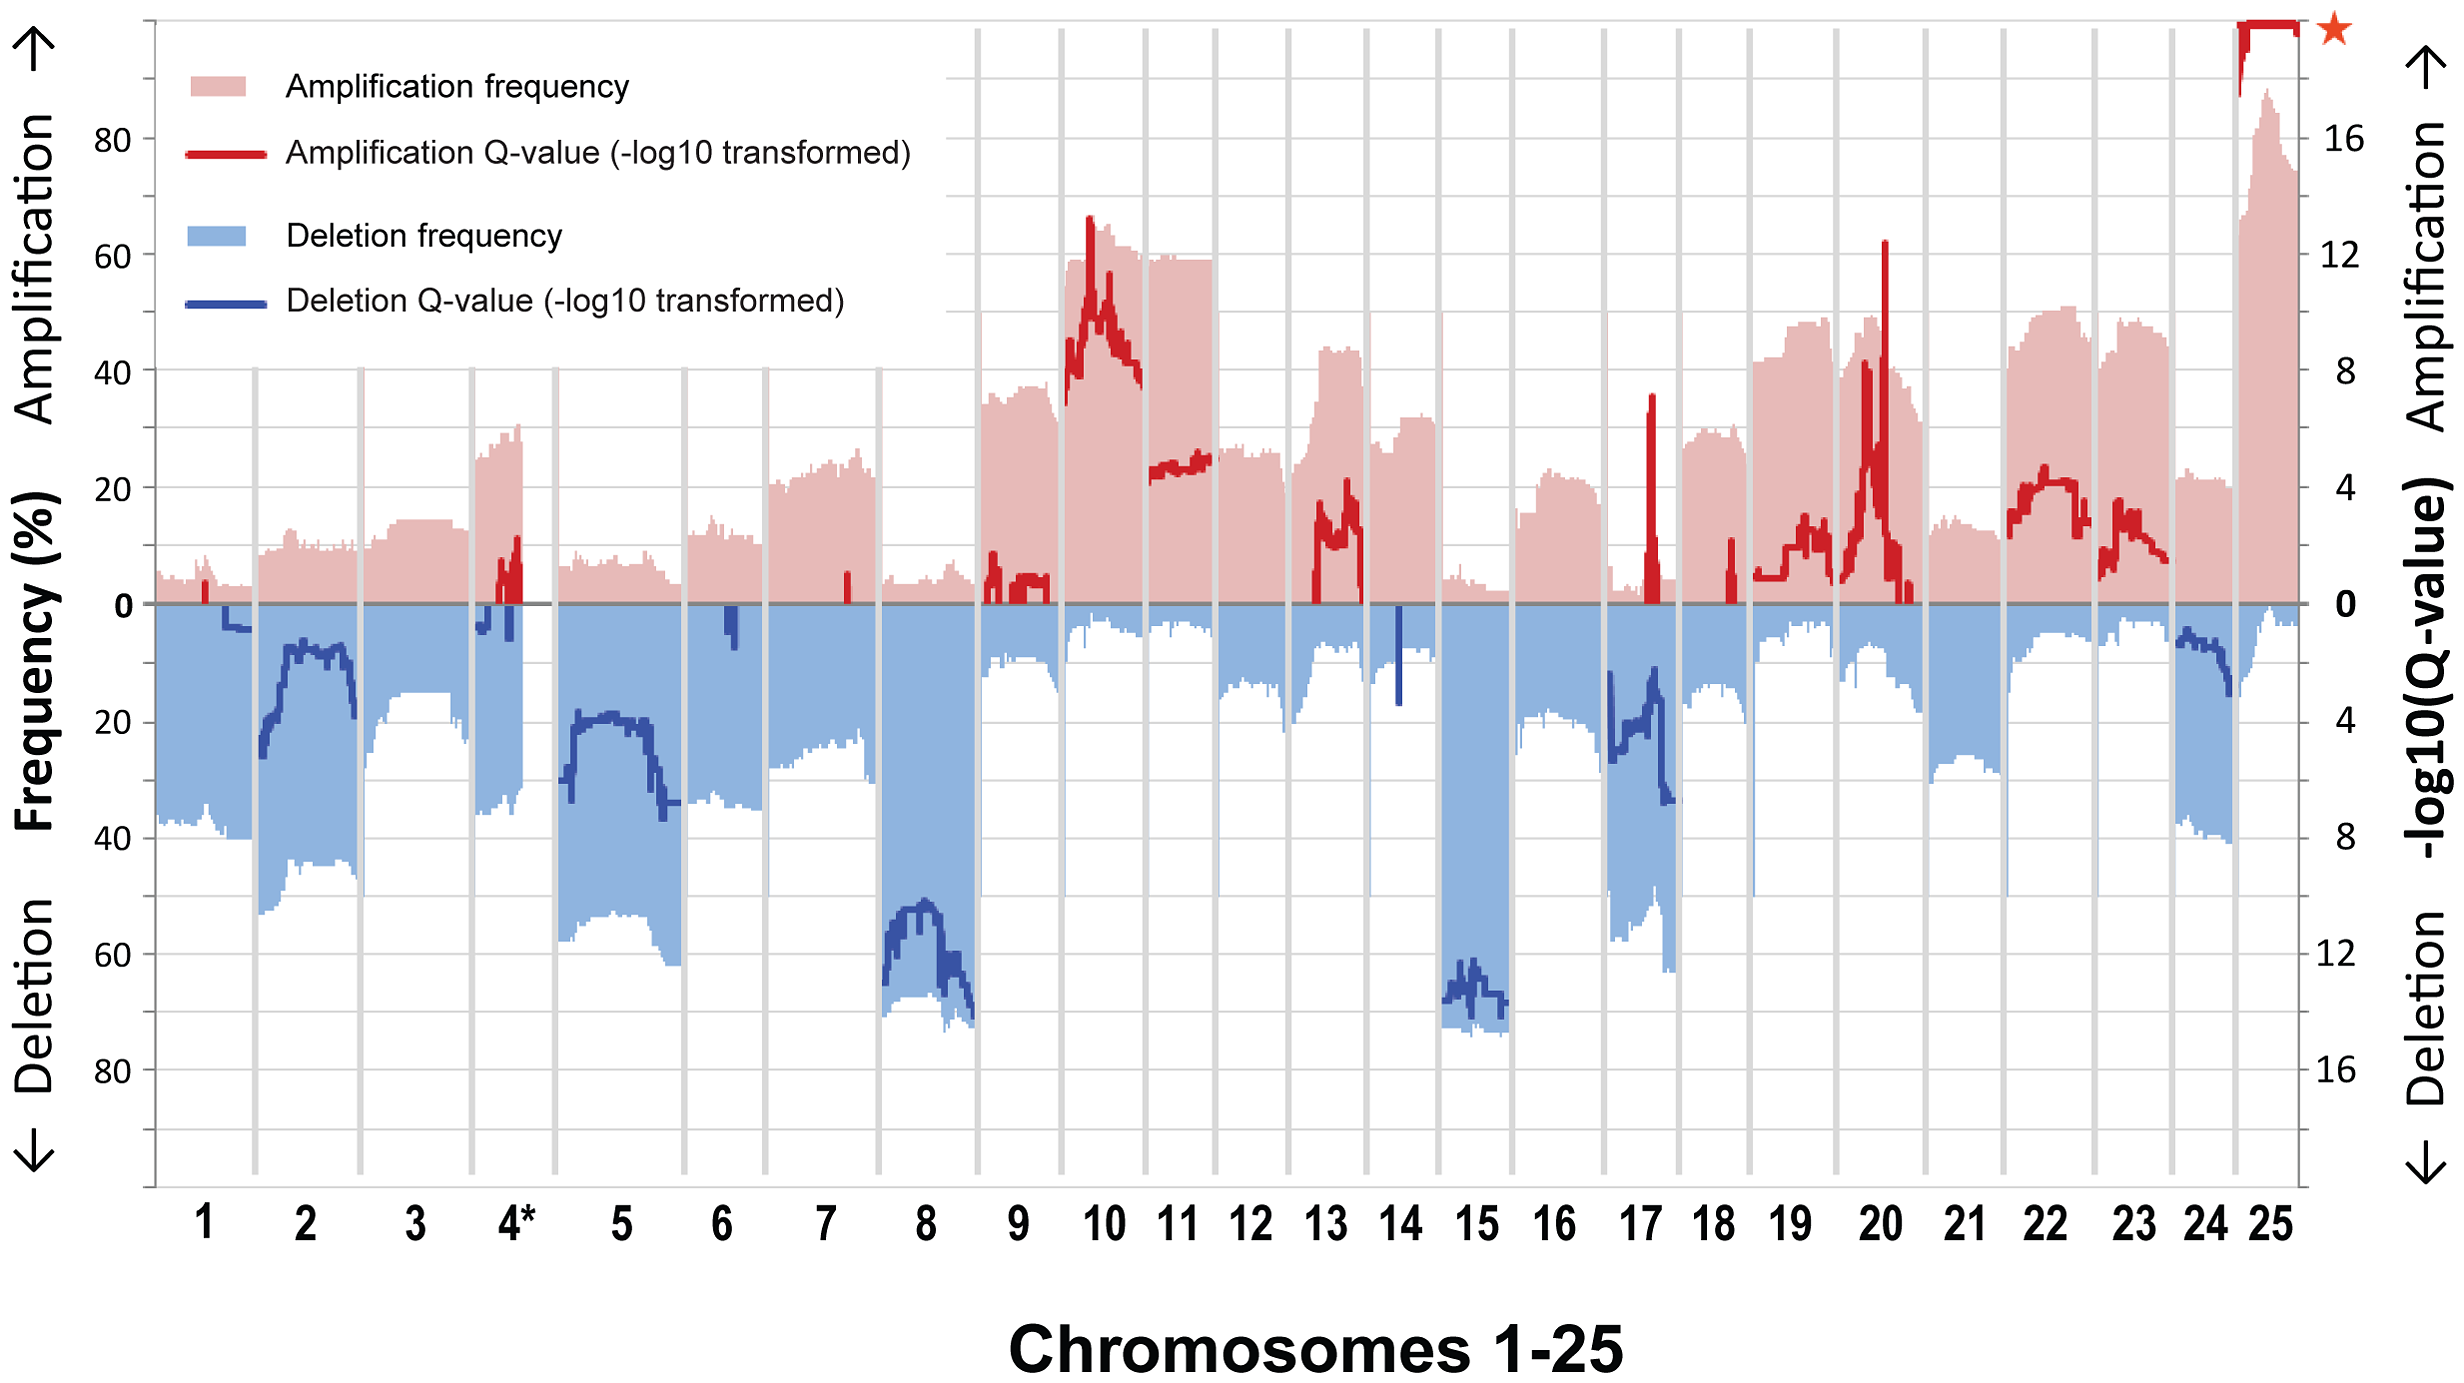 Gene-based frequency and Q-value profiles for gains and losses over the 25 zebrafish chromosomes.